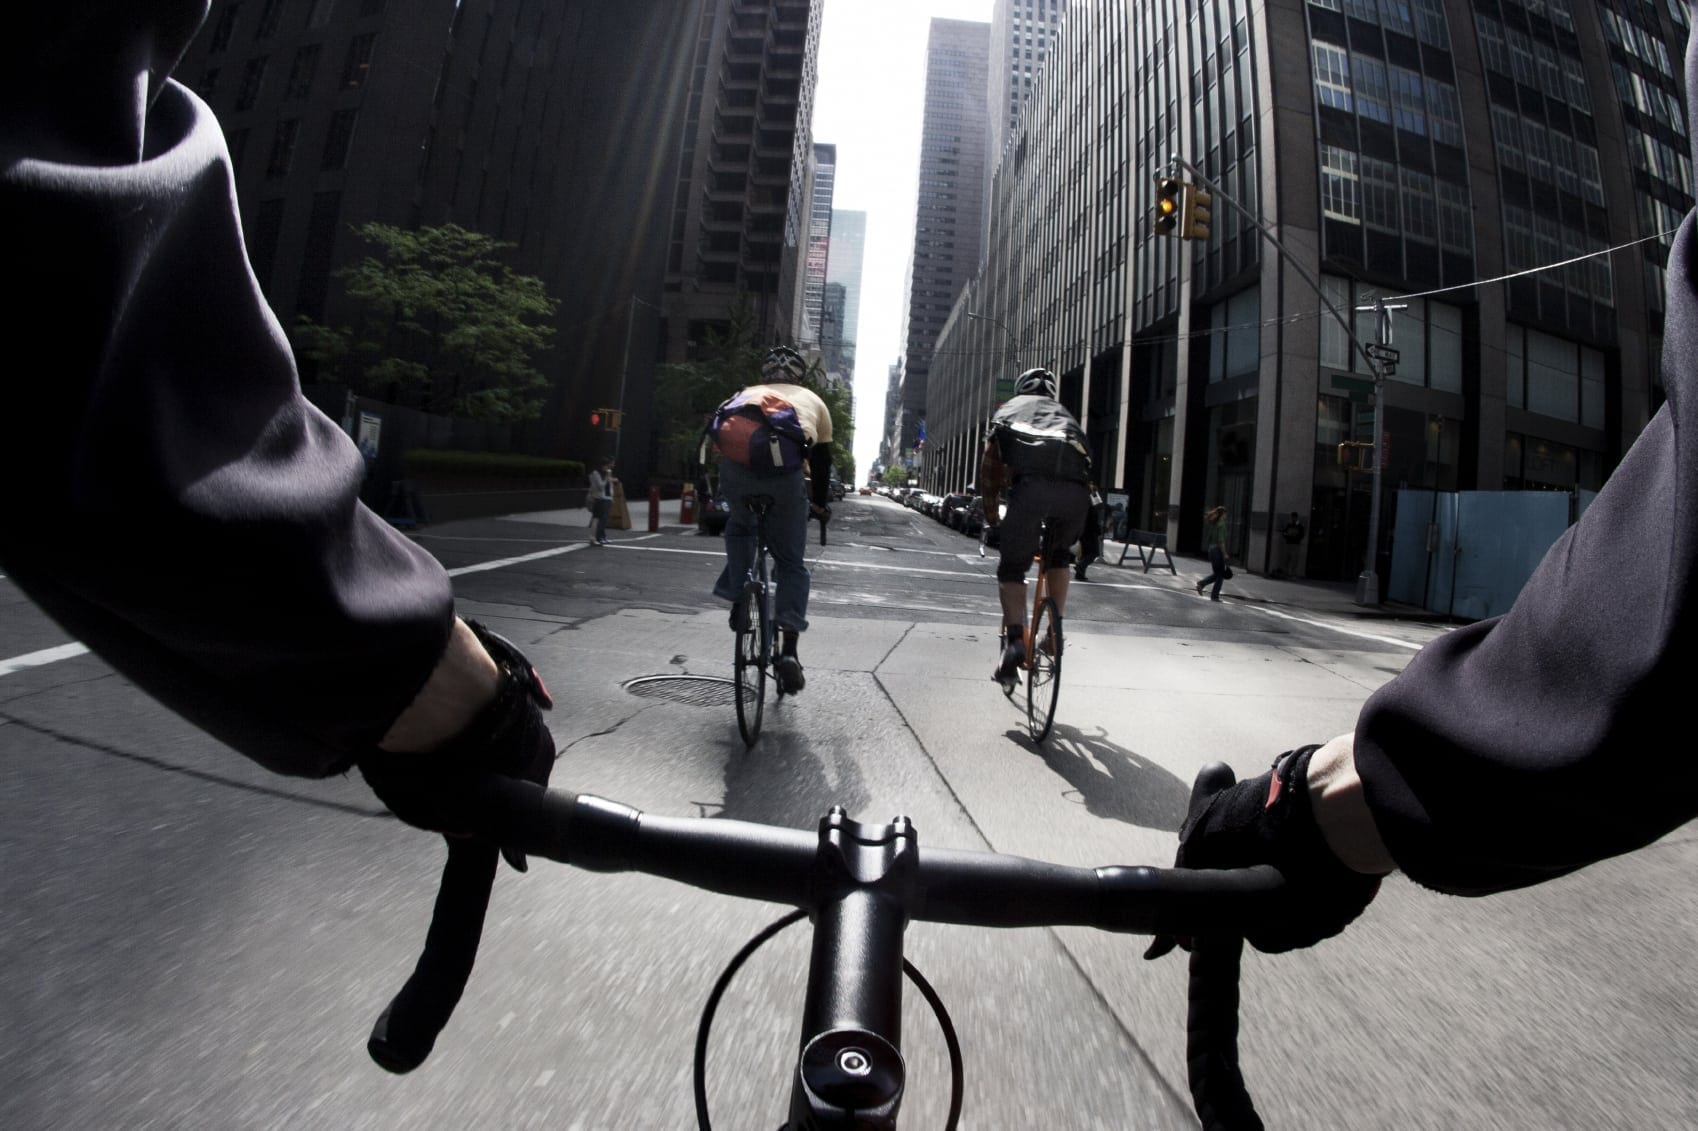 Odessa Injury Lawyer Offers Tips for Bicycle Safety